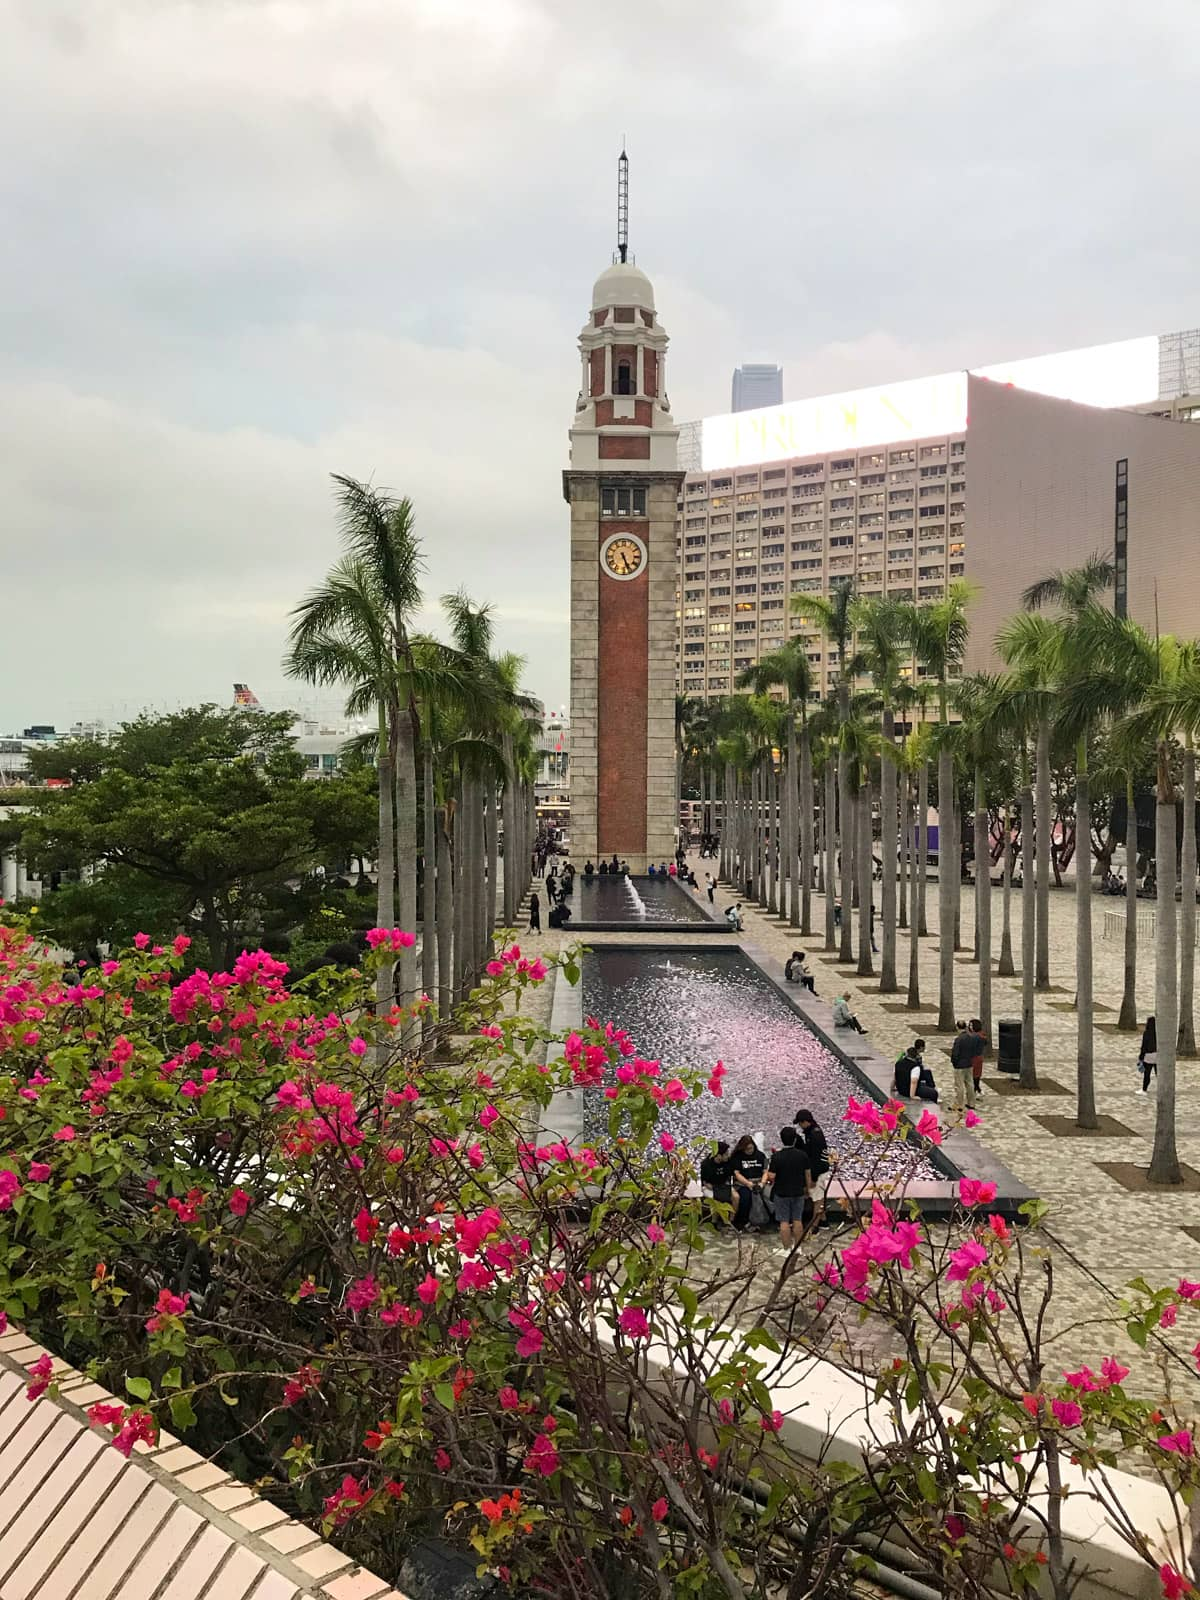 A tall tower with a long water feature in front of it. Palm trees adorn the sides of the water feature. The sky is cloudy and muted in colour.